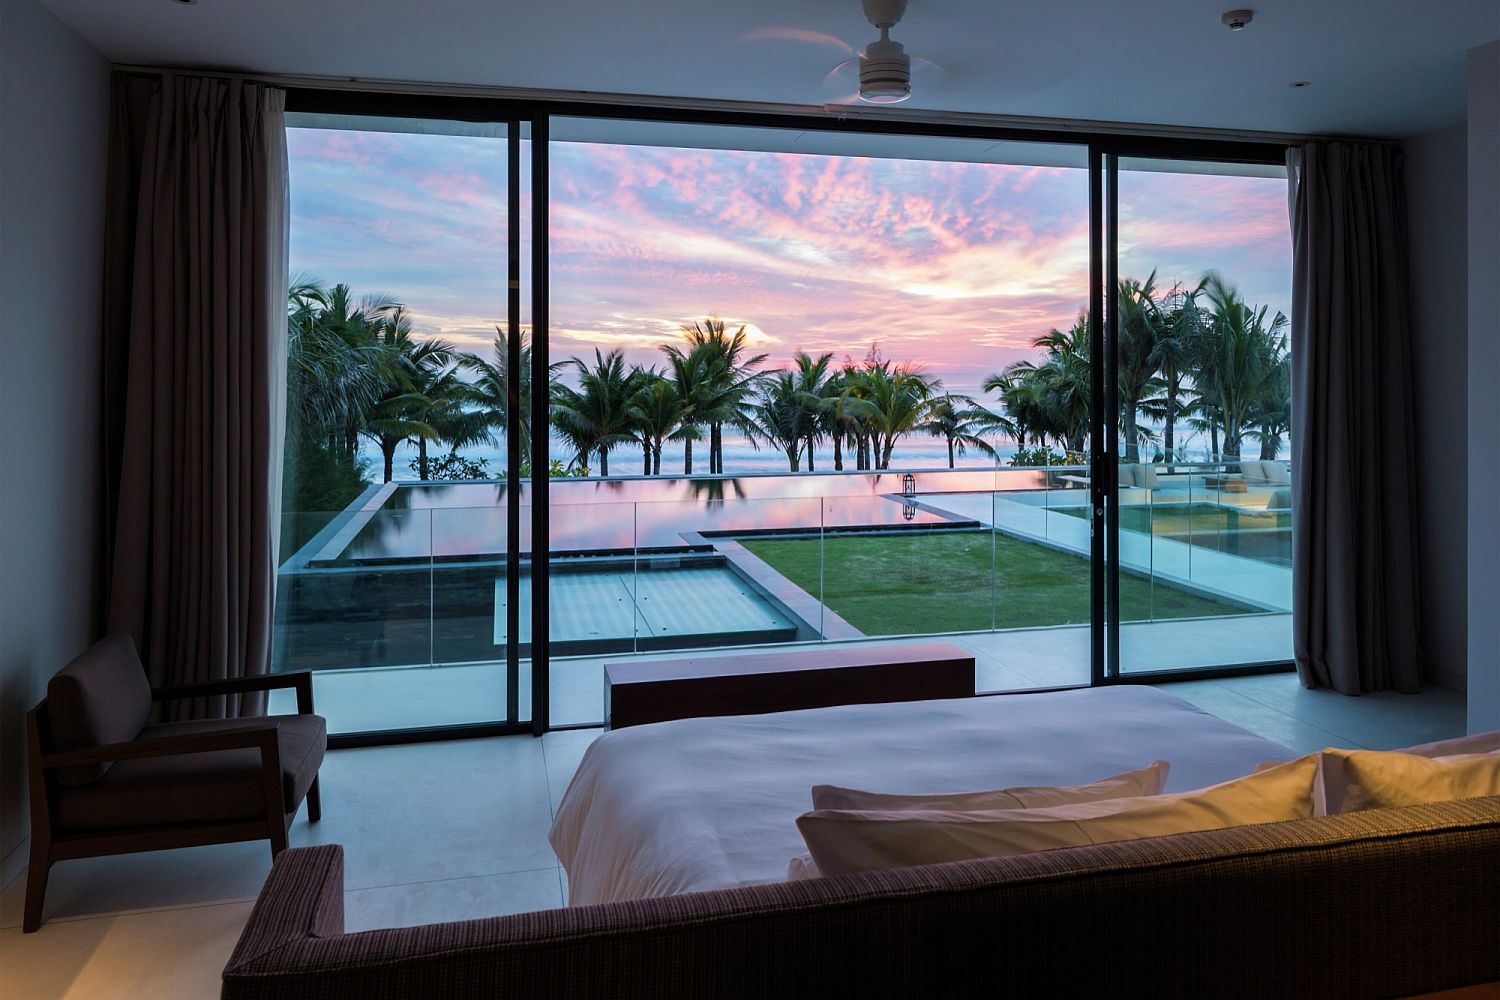 Mesmerizing view of the sea and the distant sunset from the comfort of your bedroom